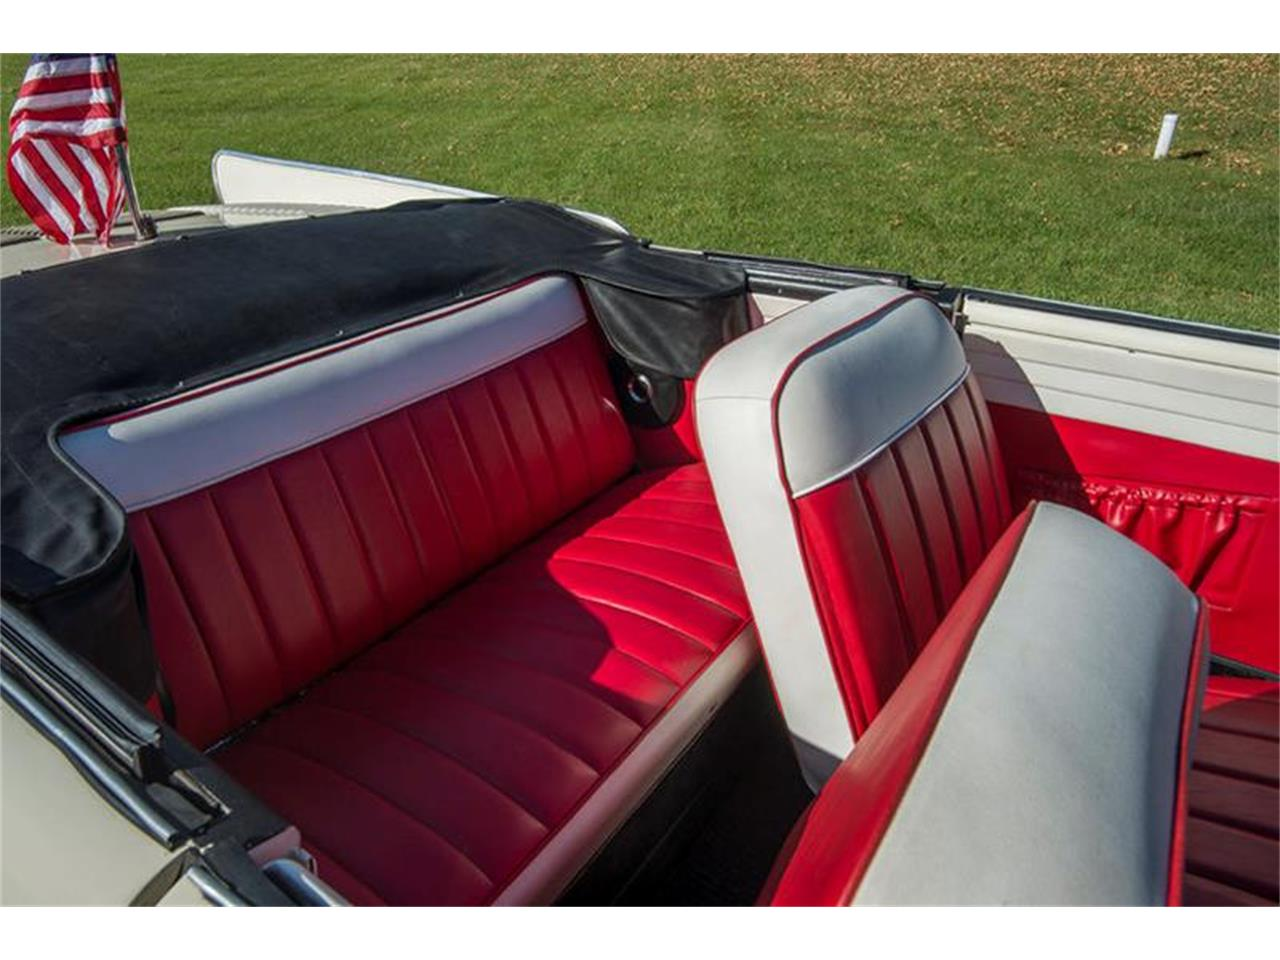 Large Picture of 1967 Amphicar 770 located in Rogers Minnesota - $54,950.00 Offered by Ellingson Motorcars - M6UC